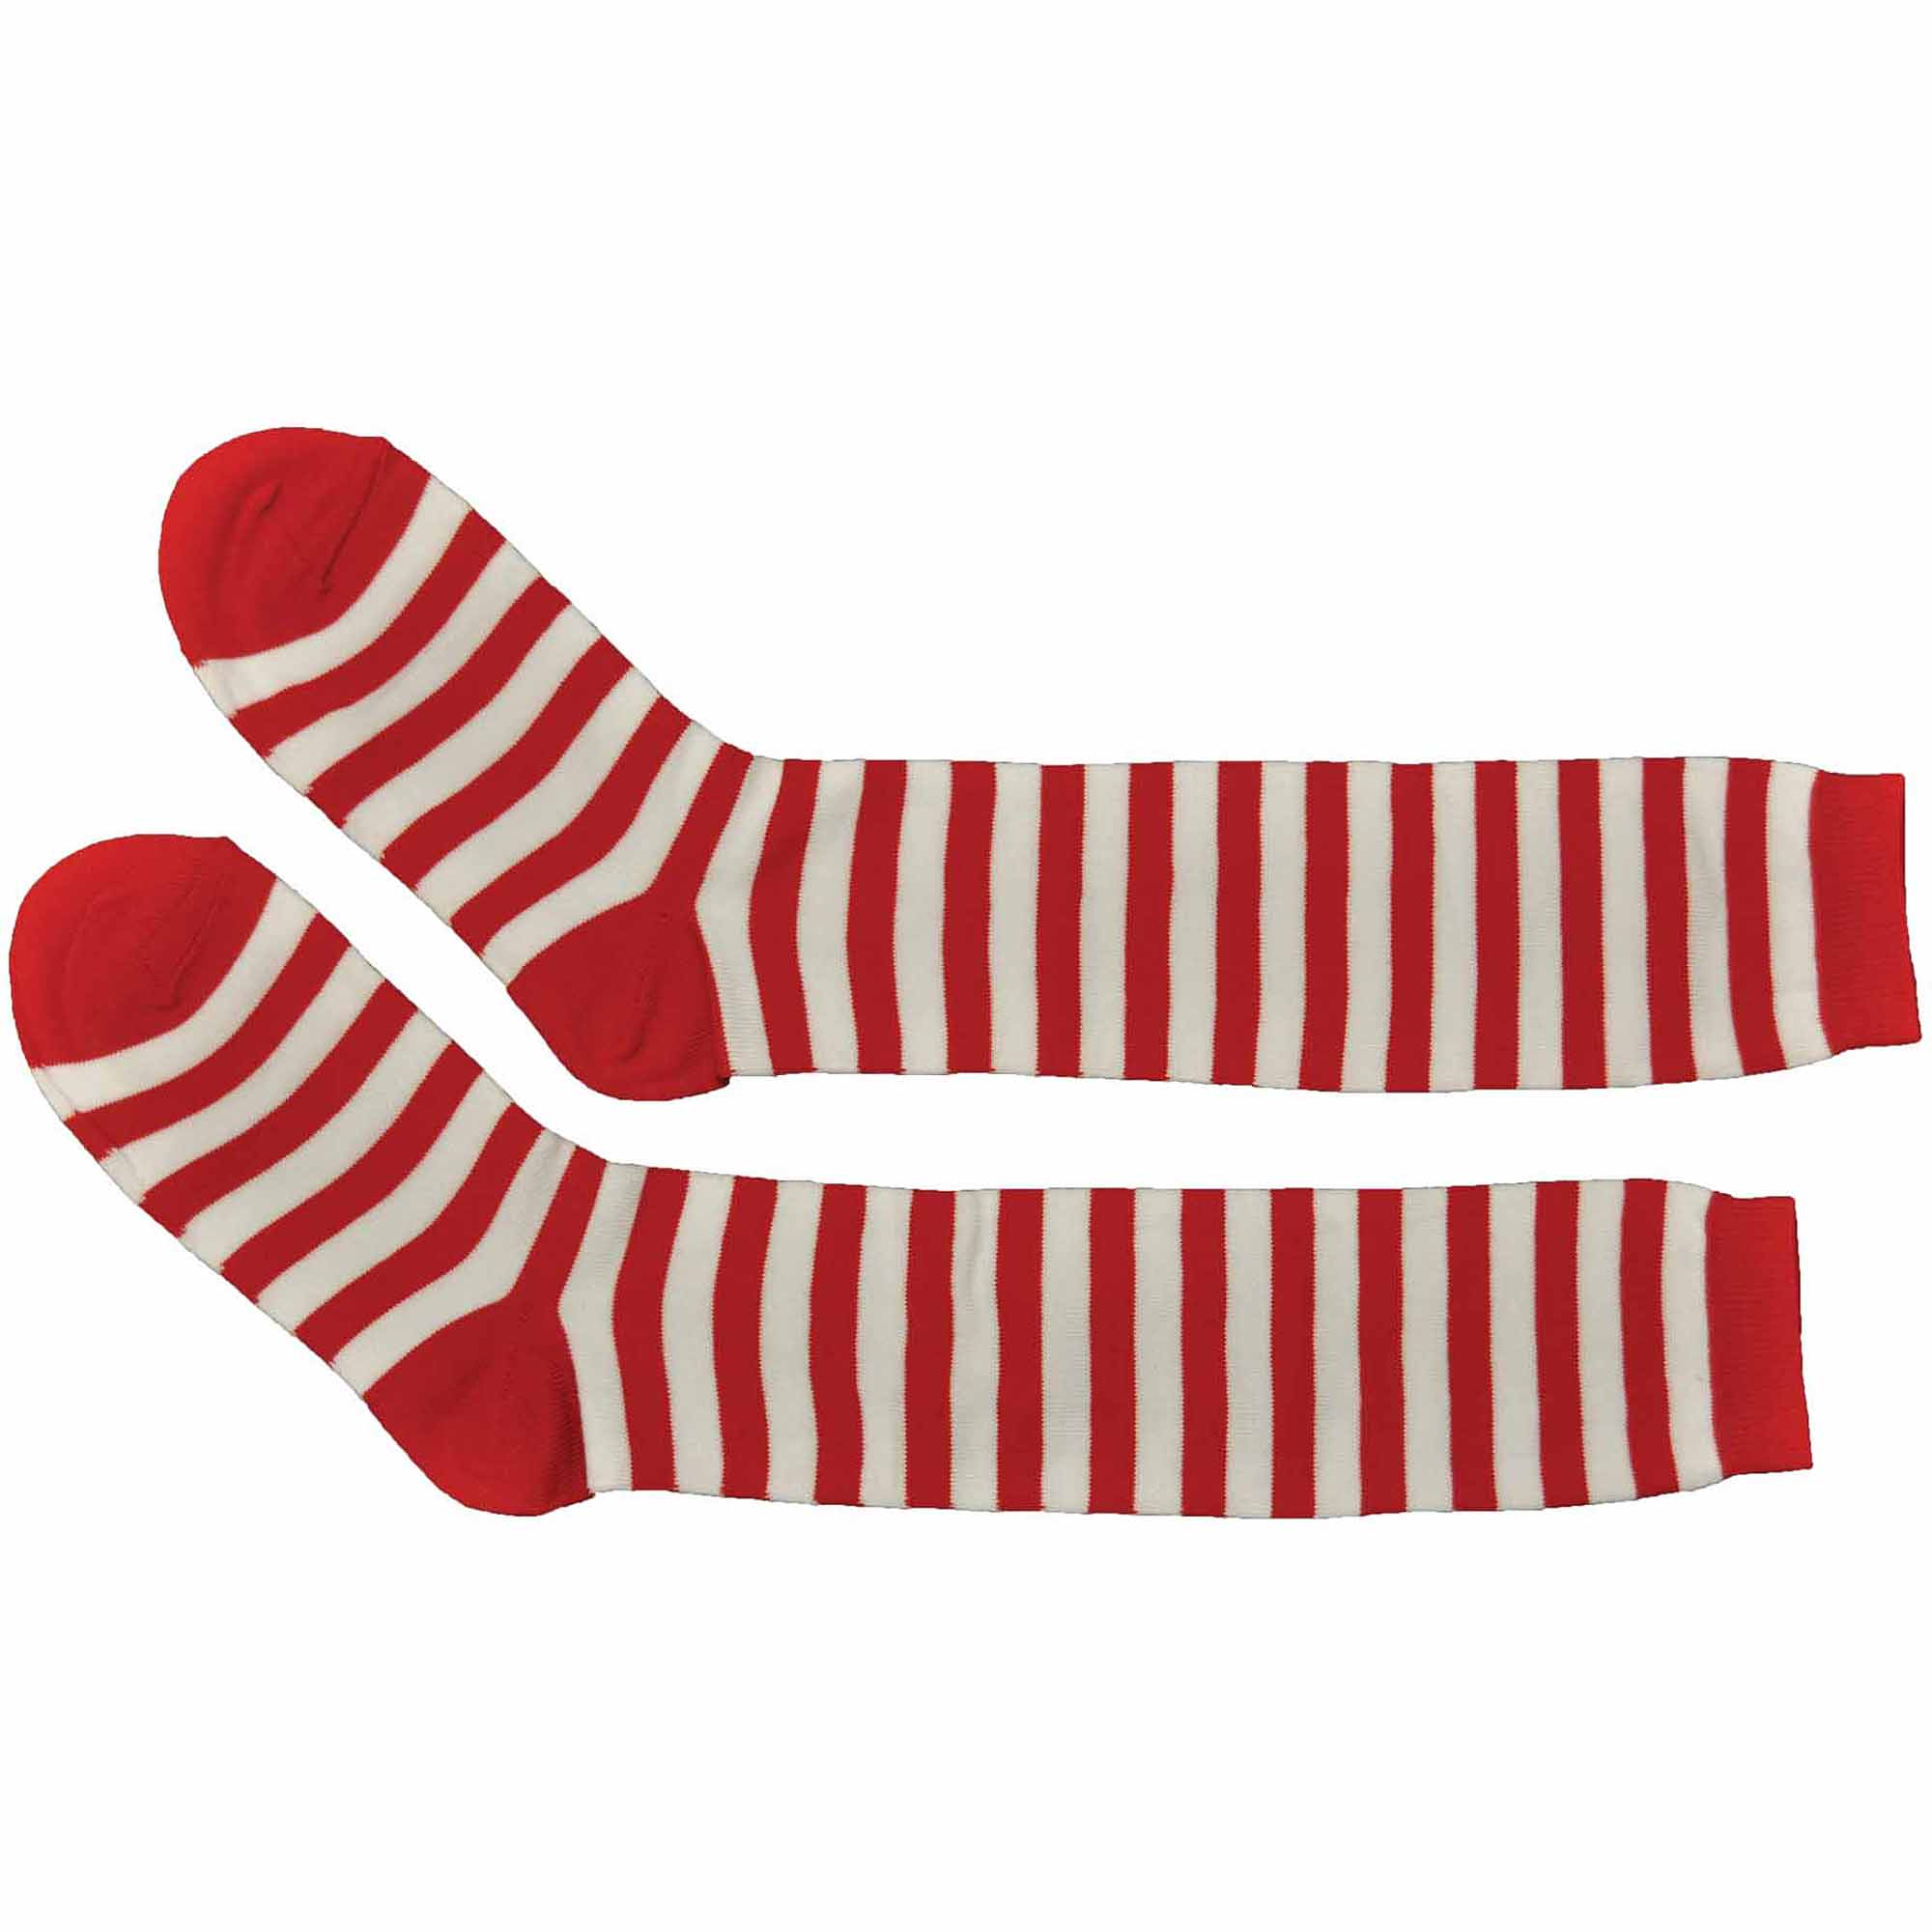 Rag Doll Elf Socks Adult Halloween Accessory